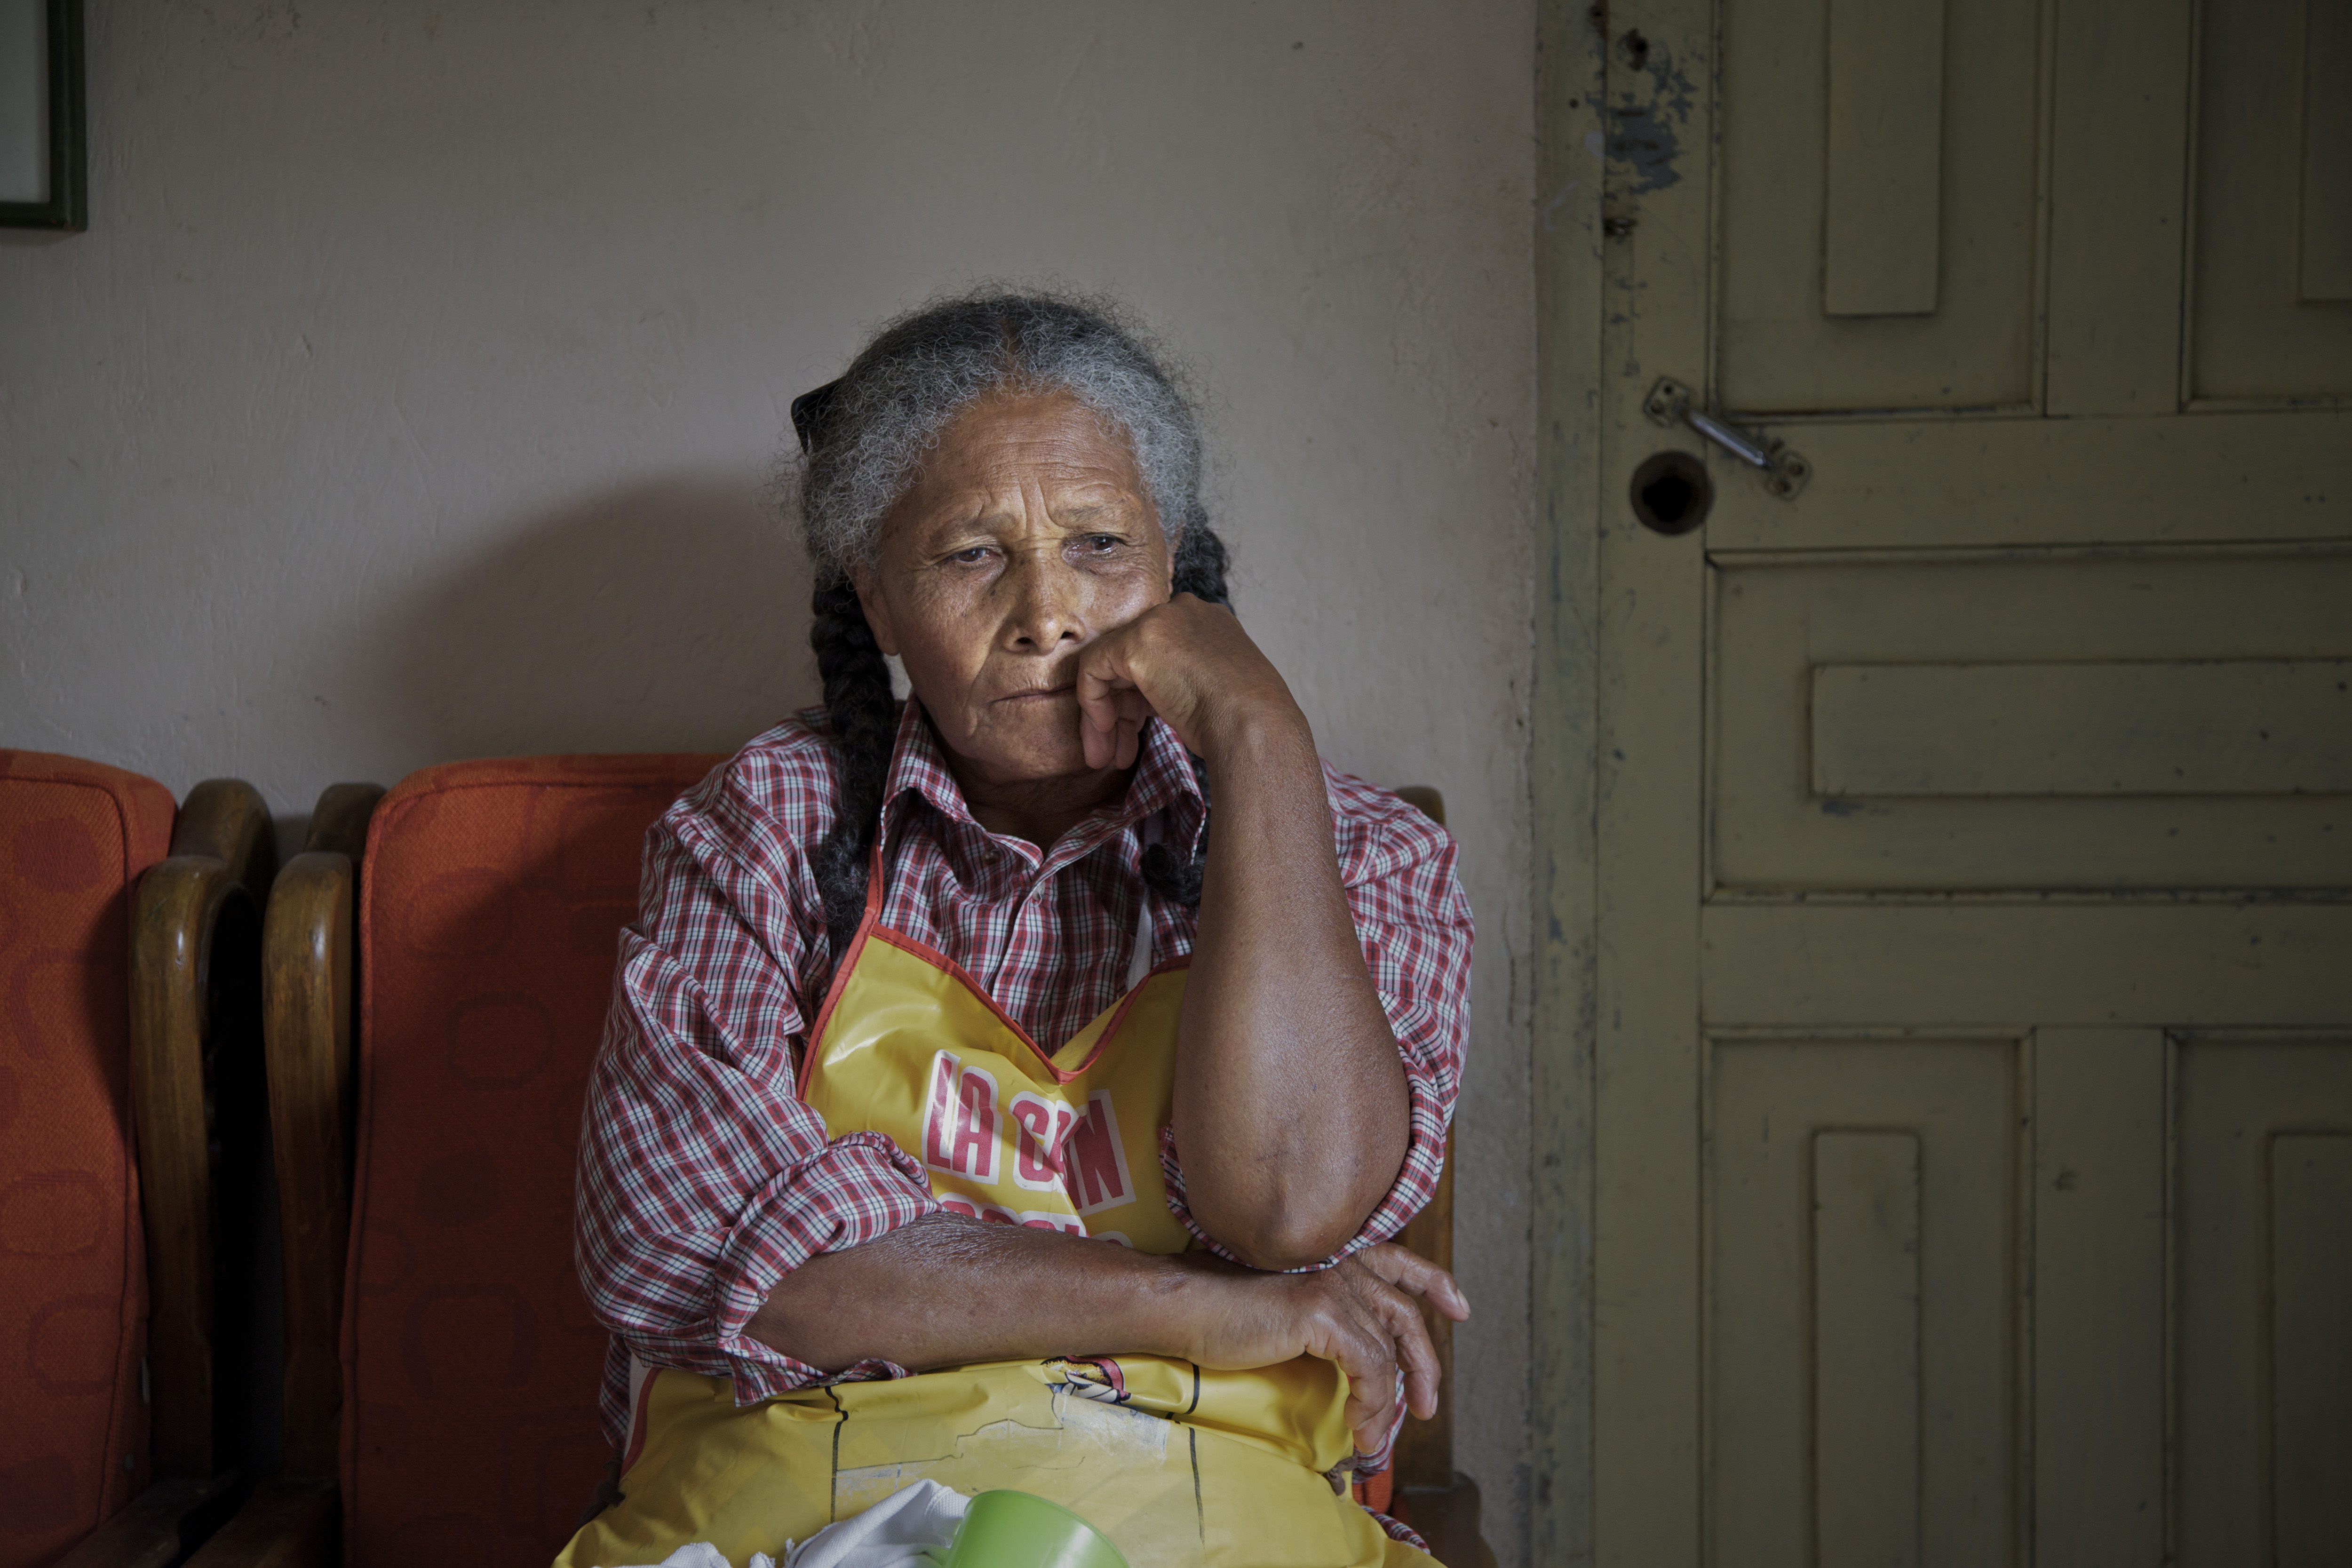 Mara de Los Angeles Posada, 75, left her home in the Loma de Cristobal neighborhood because of warring gangs. On her return she wonders when the violence will flare again after the army leaves.